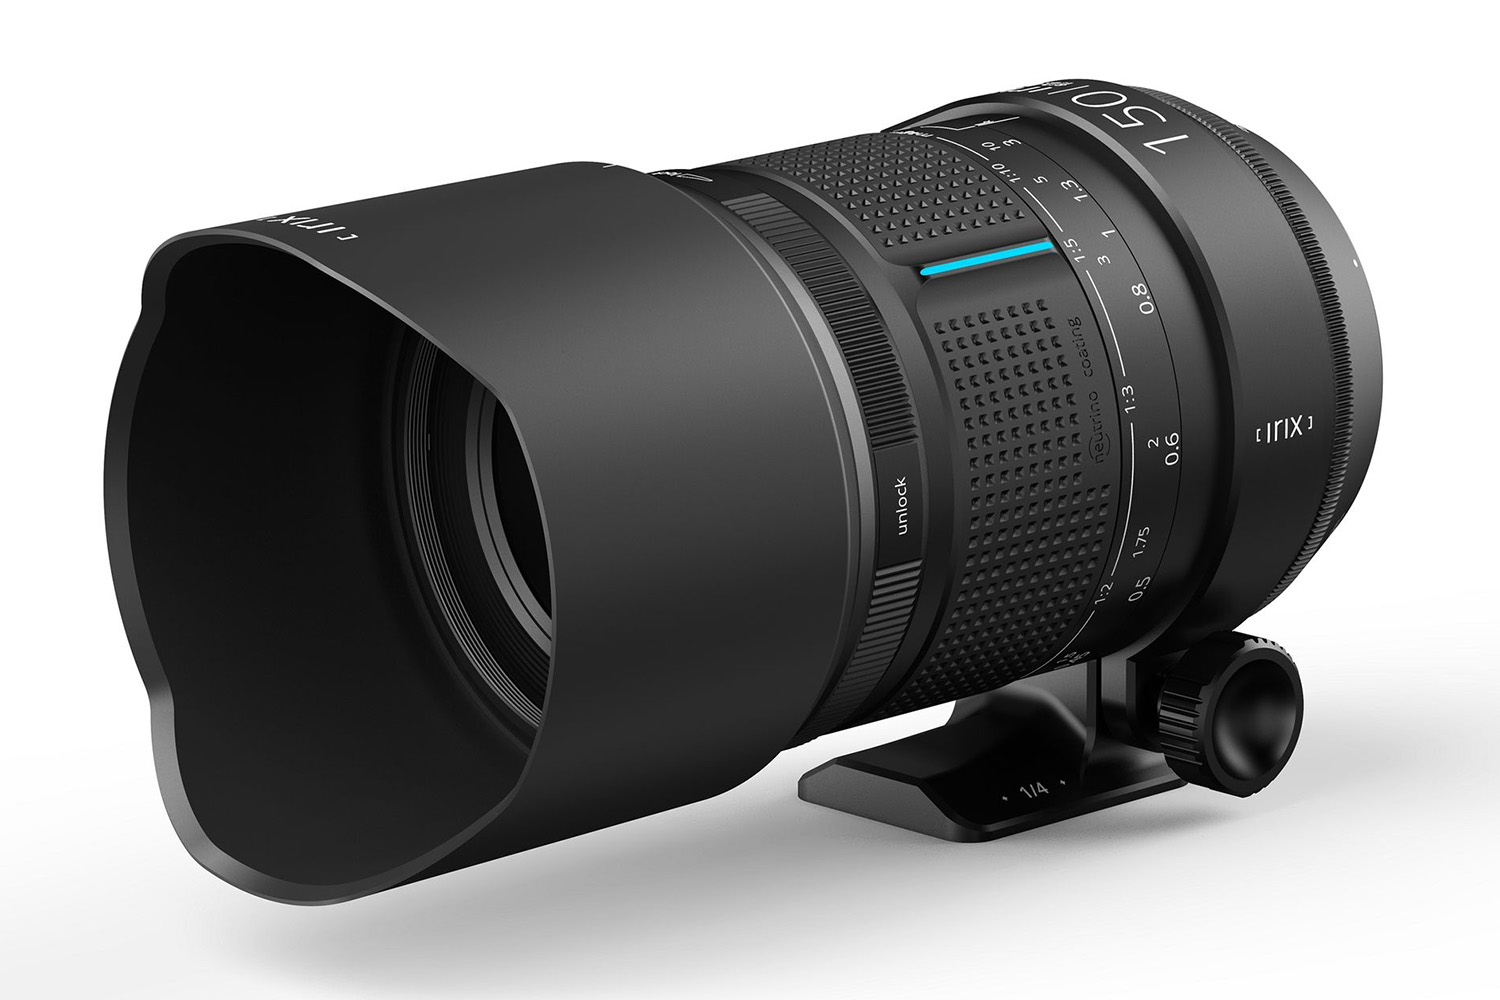 Irix 150mm f/2.8 Macro 1:1 Dragonfly Lens Review